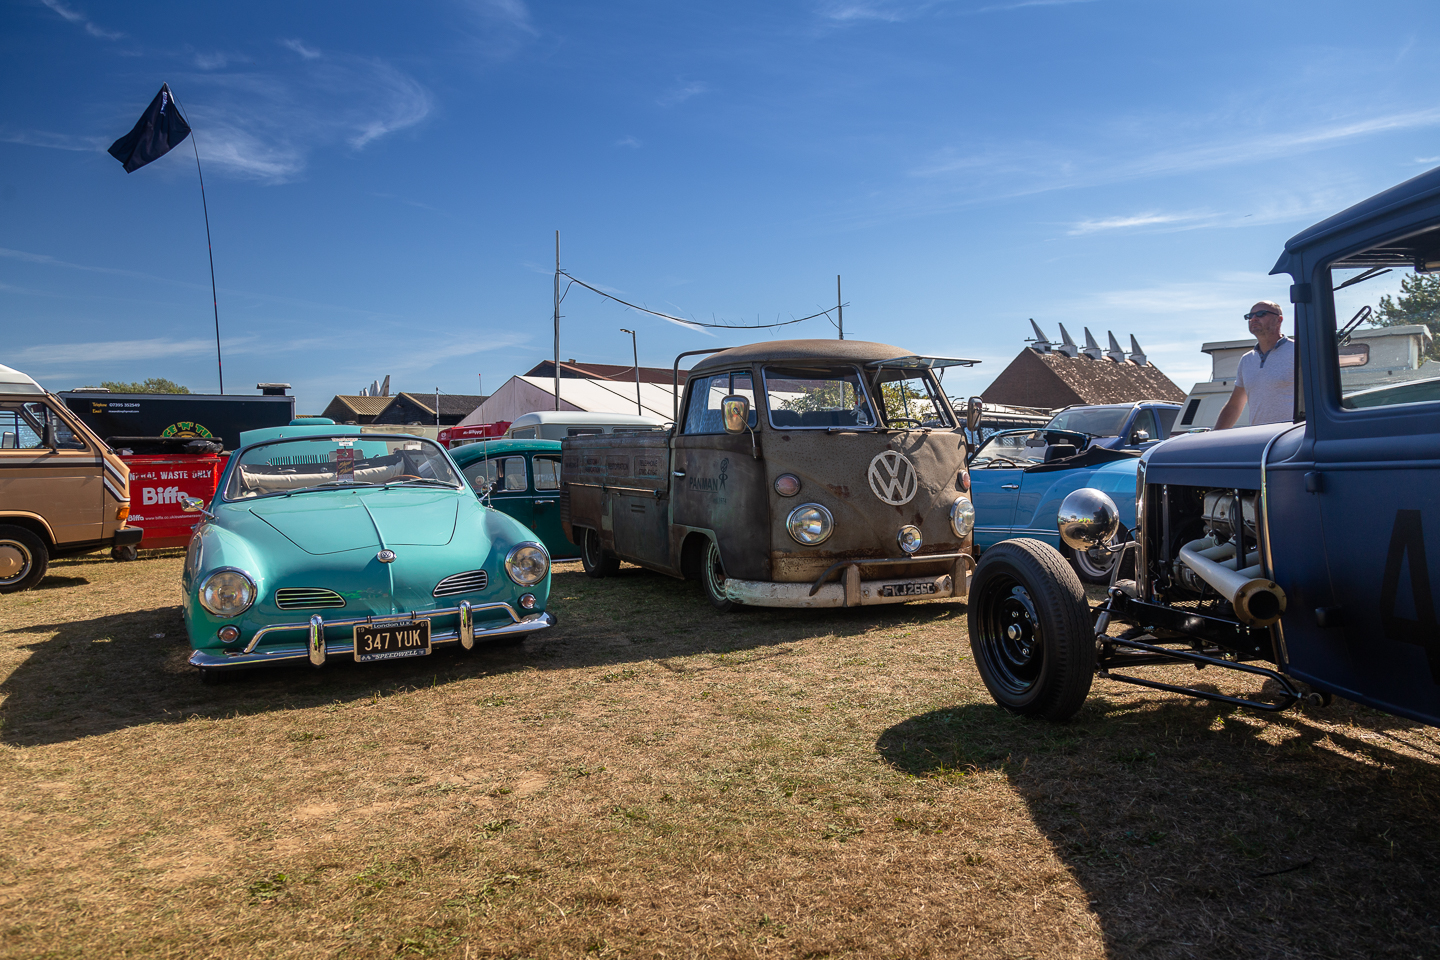 Cars on display at the Hop Farm